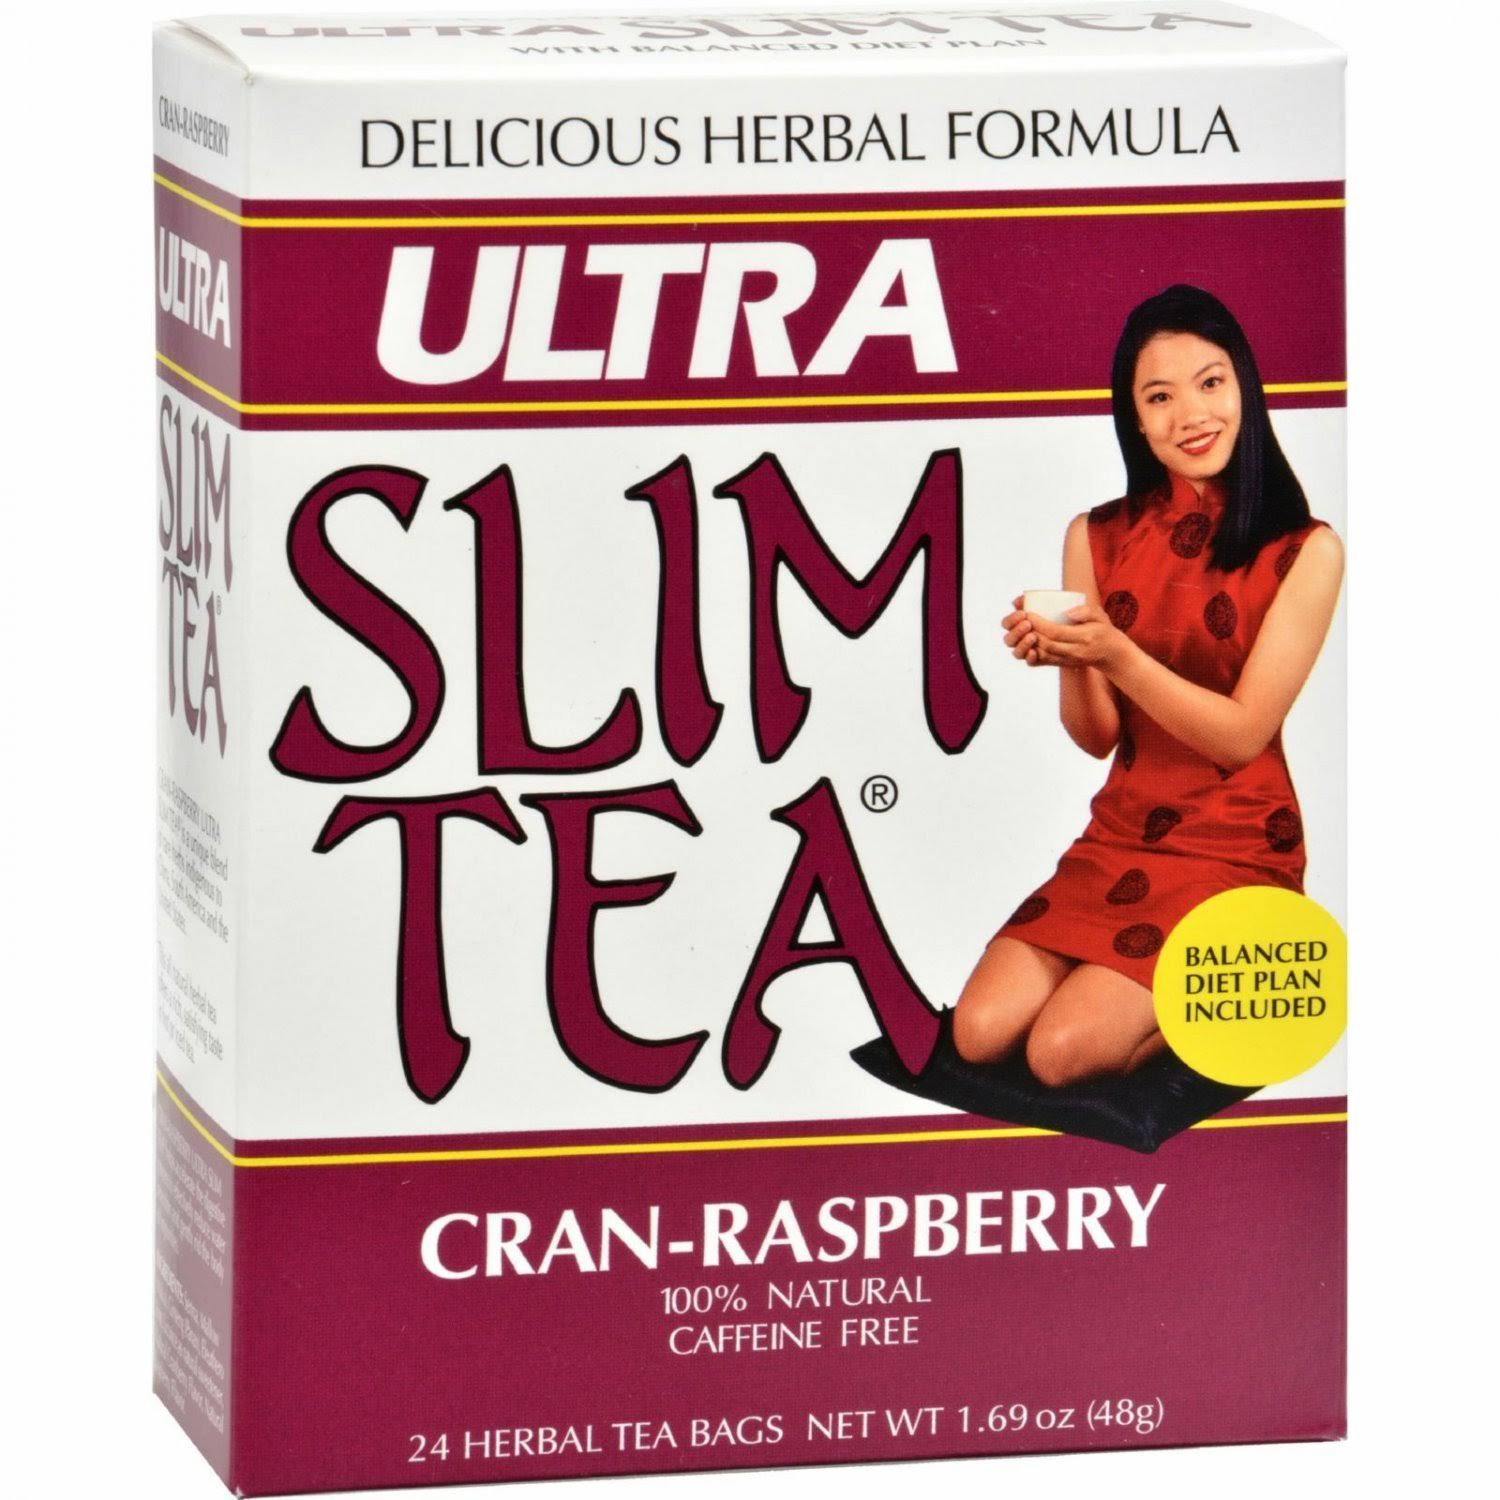 Ultra Slim Tea Herbal Tea - Cran-Raspberry, 24 Tea Bags, 48g